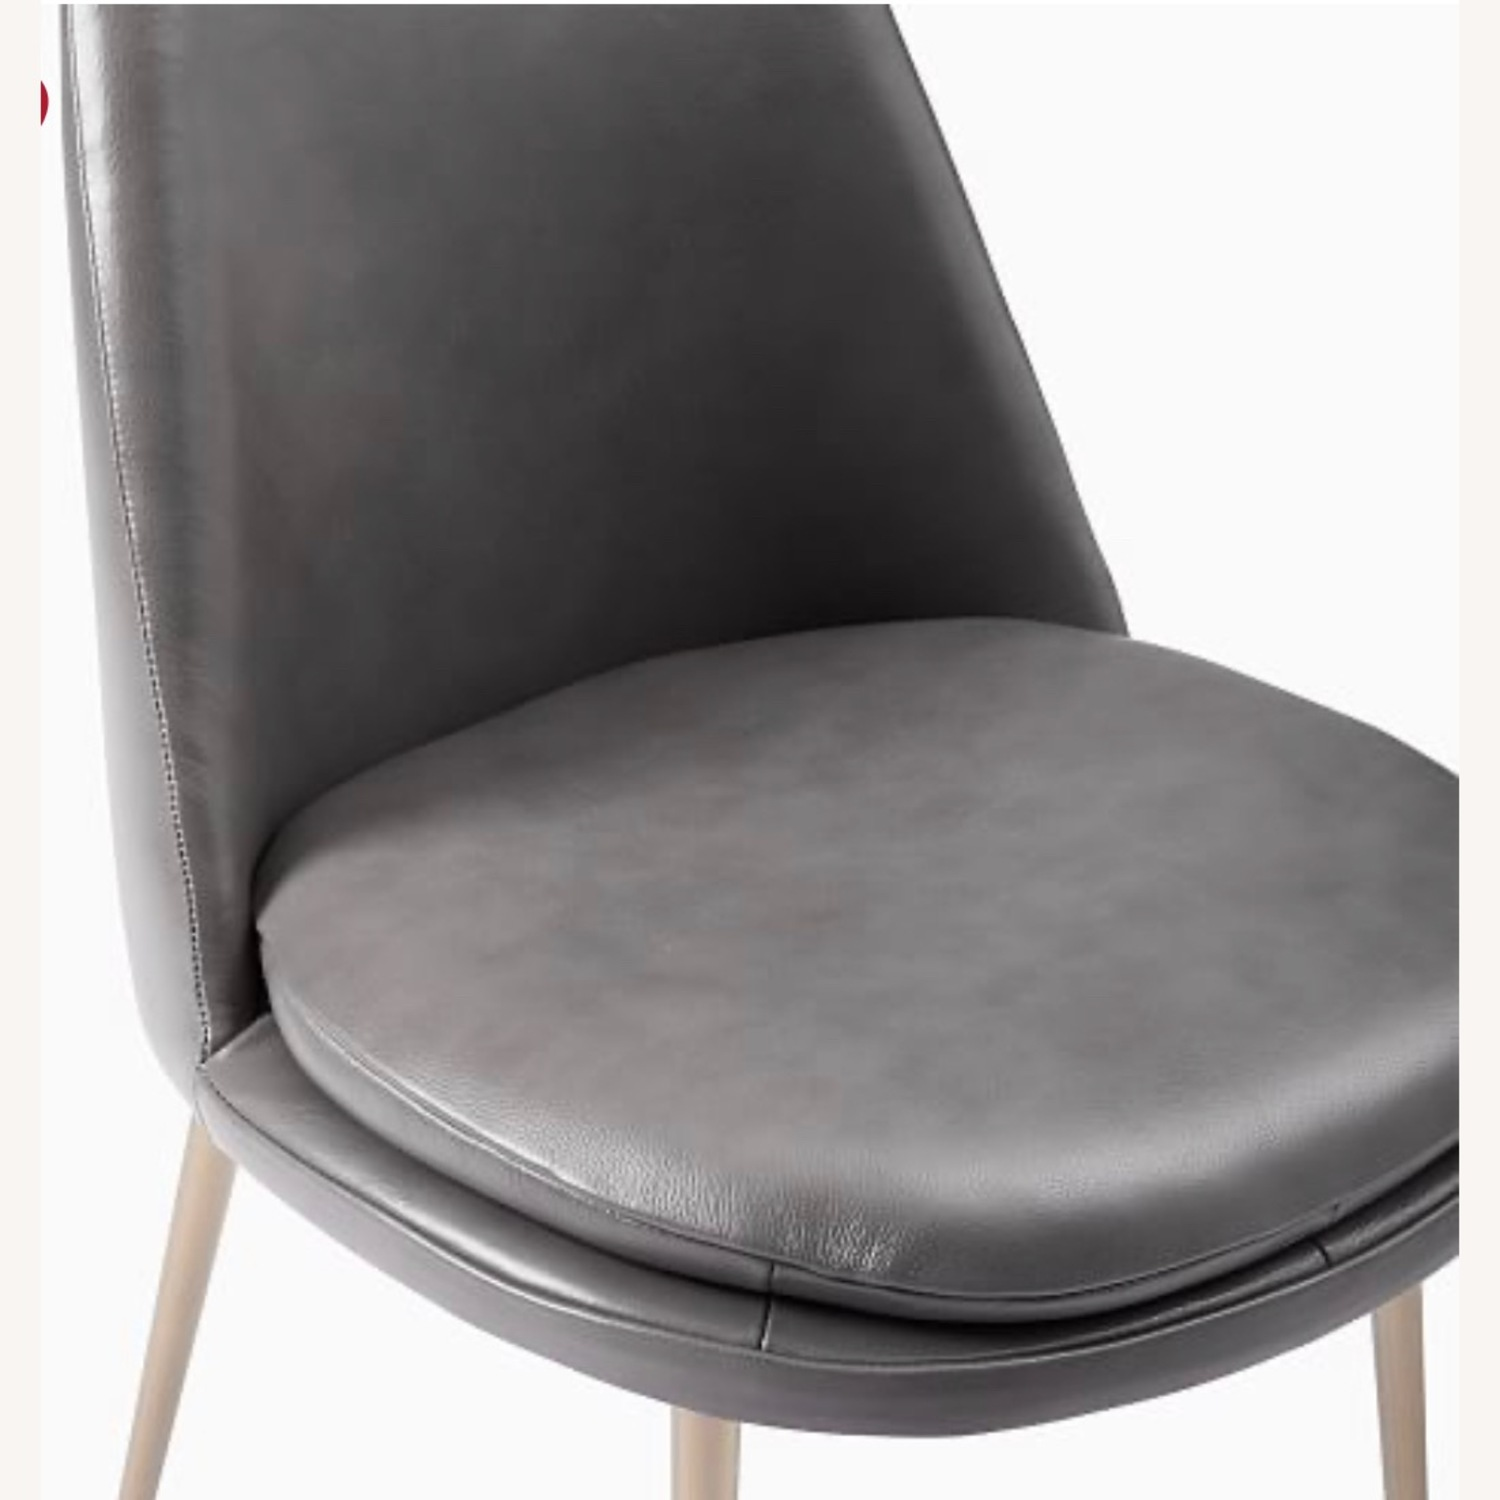 West Elm Finley Leather Dining Chair Gray - image-1